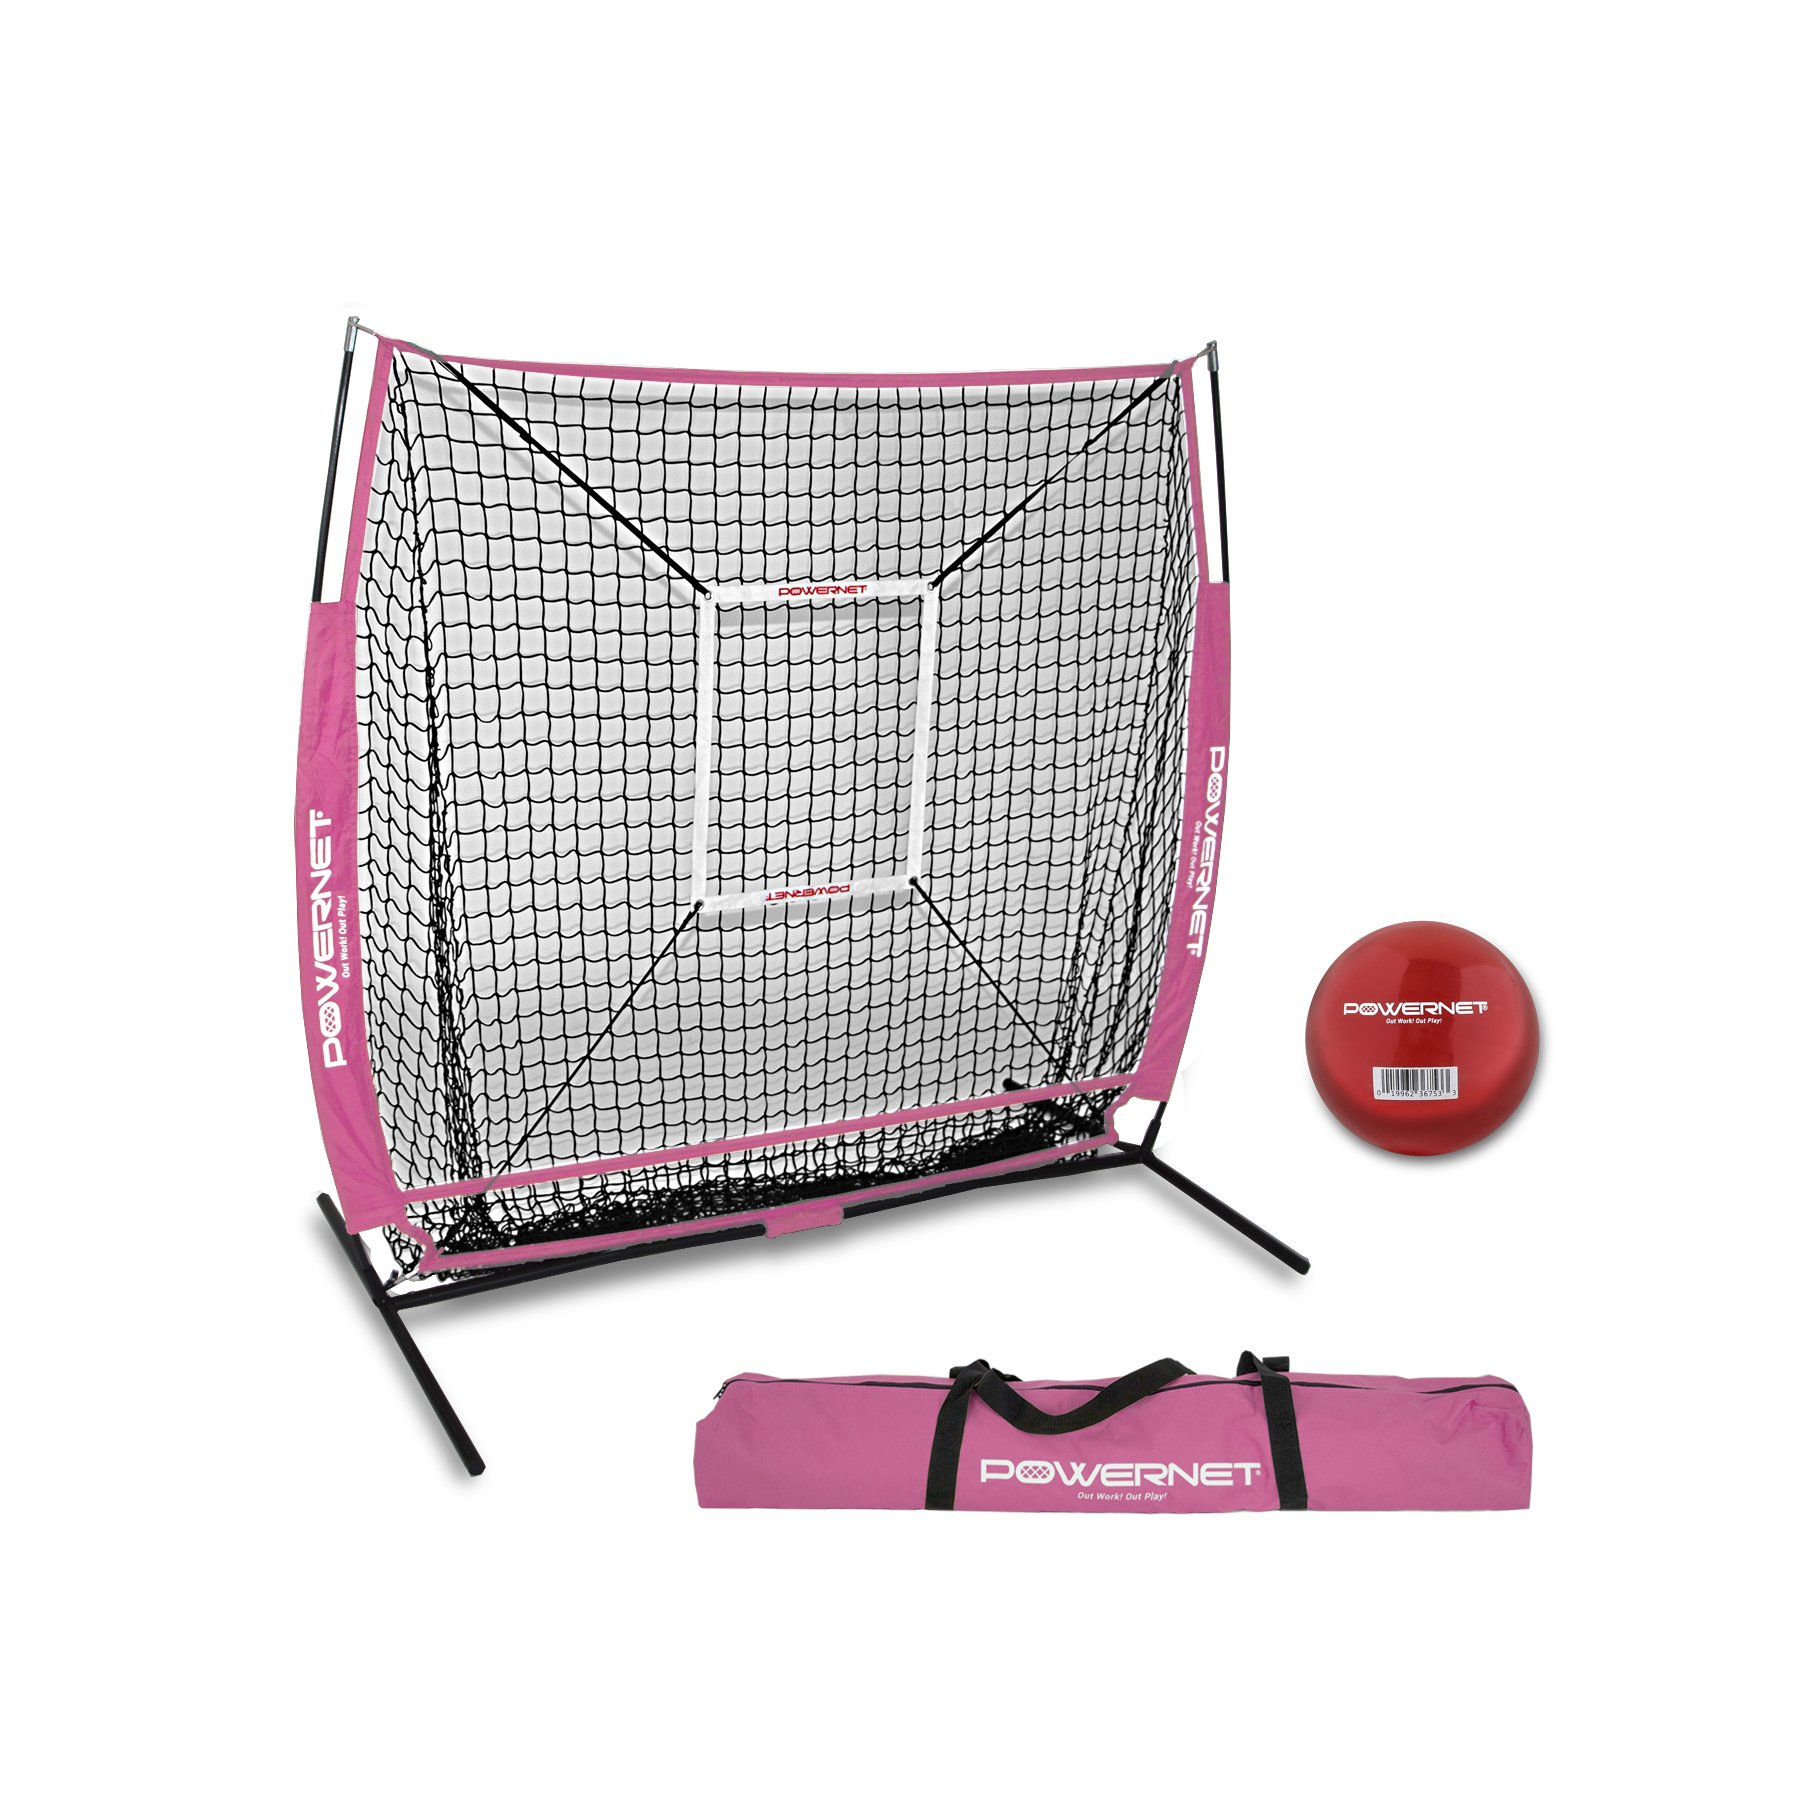 PowerNet Baseball and Softball Practice Net 5 x 5 (Bundle with Strike Zone and Training Ball + (Pink) by PowerNet